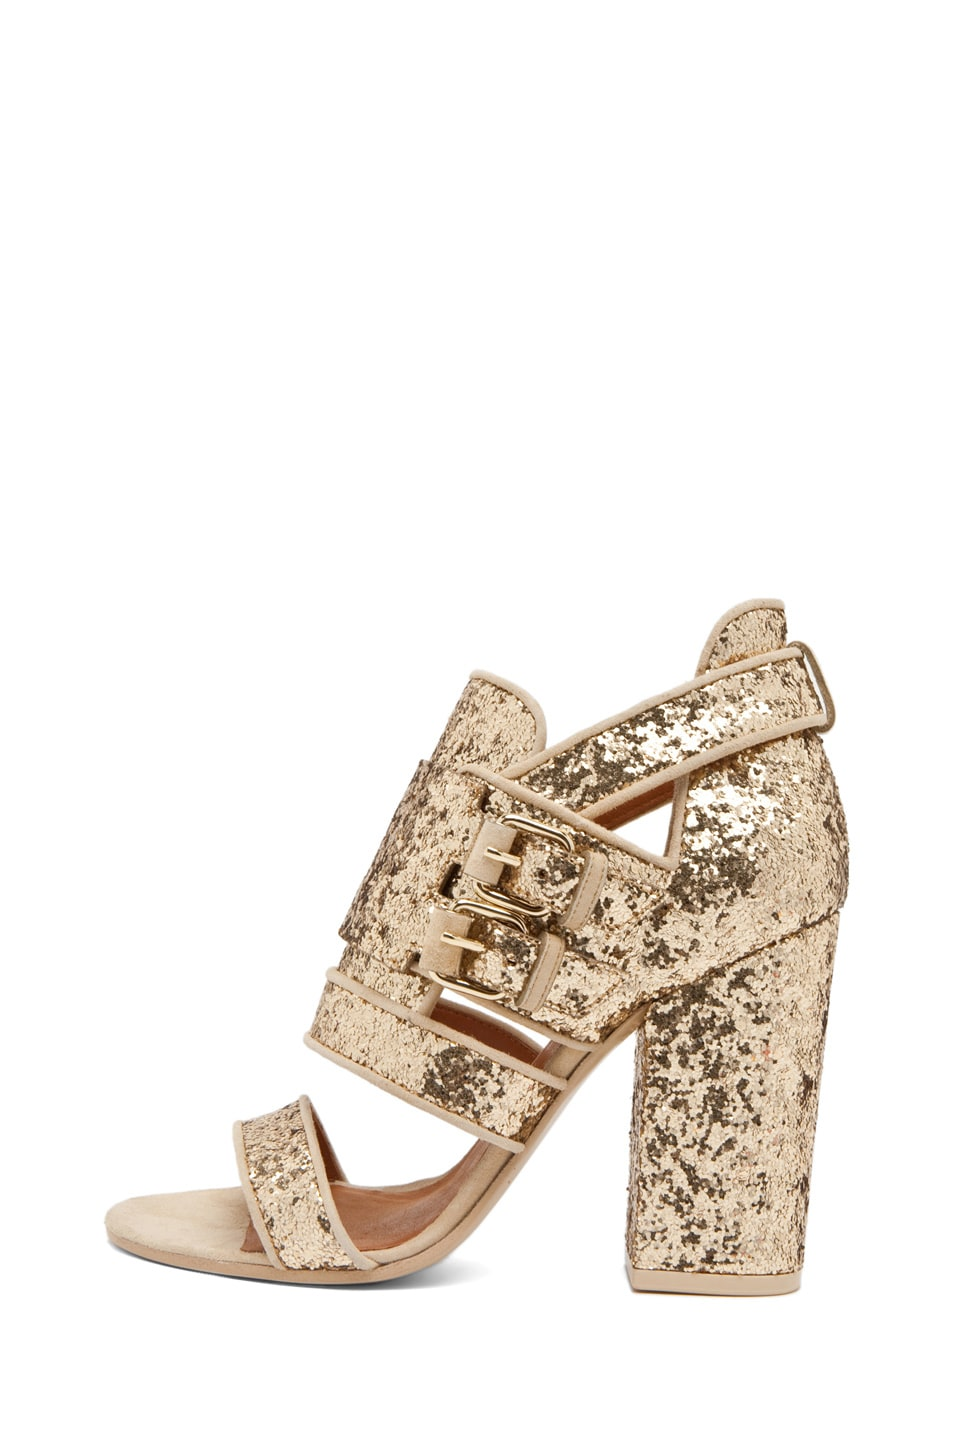 Image 1 of GIVENCHY Vittorias Heel in Glitter Pale Gold